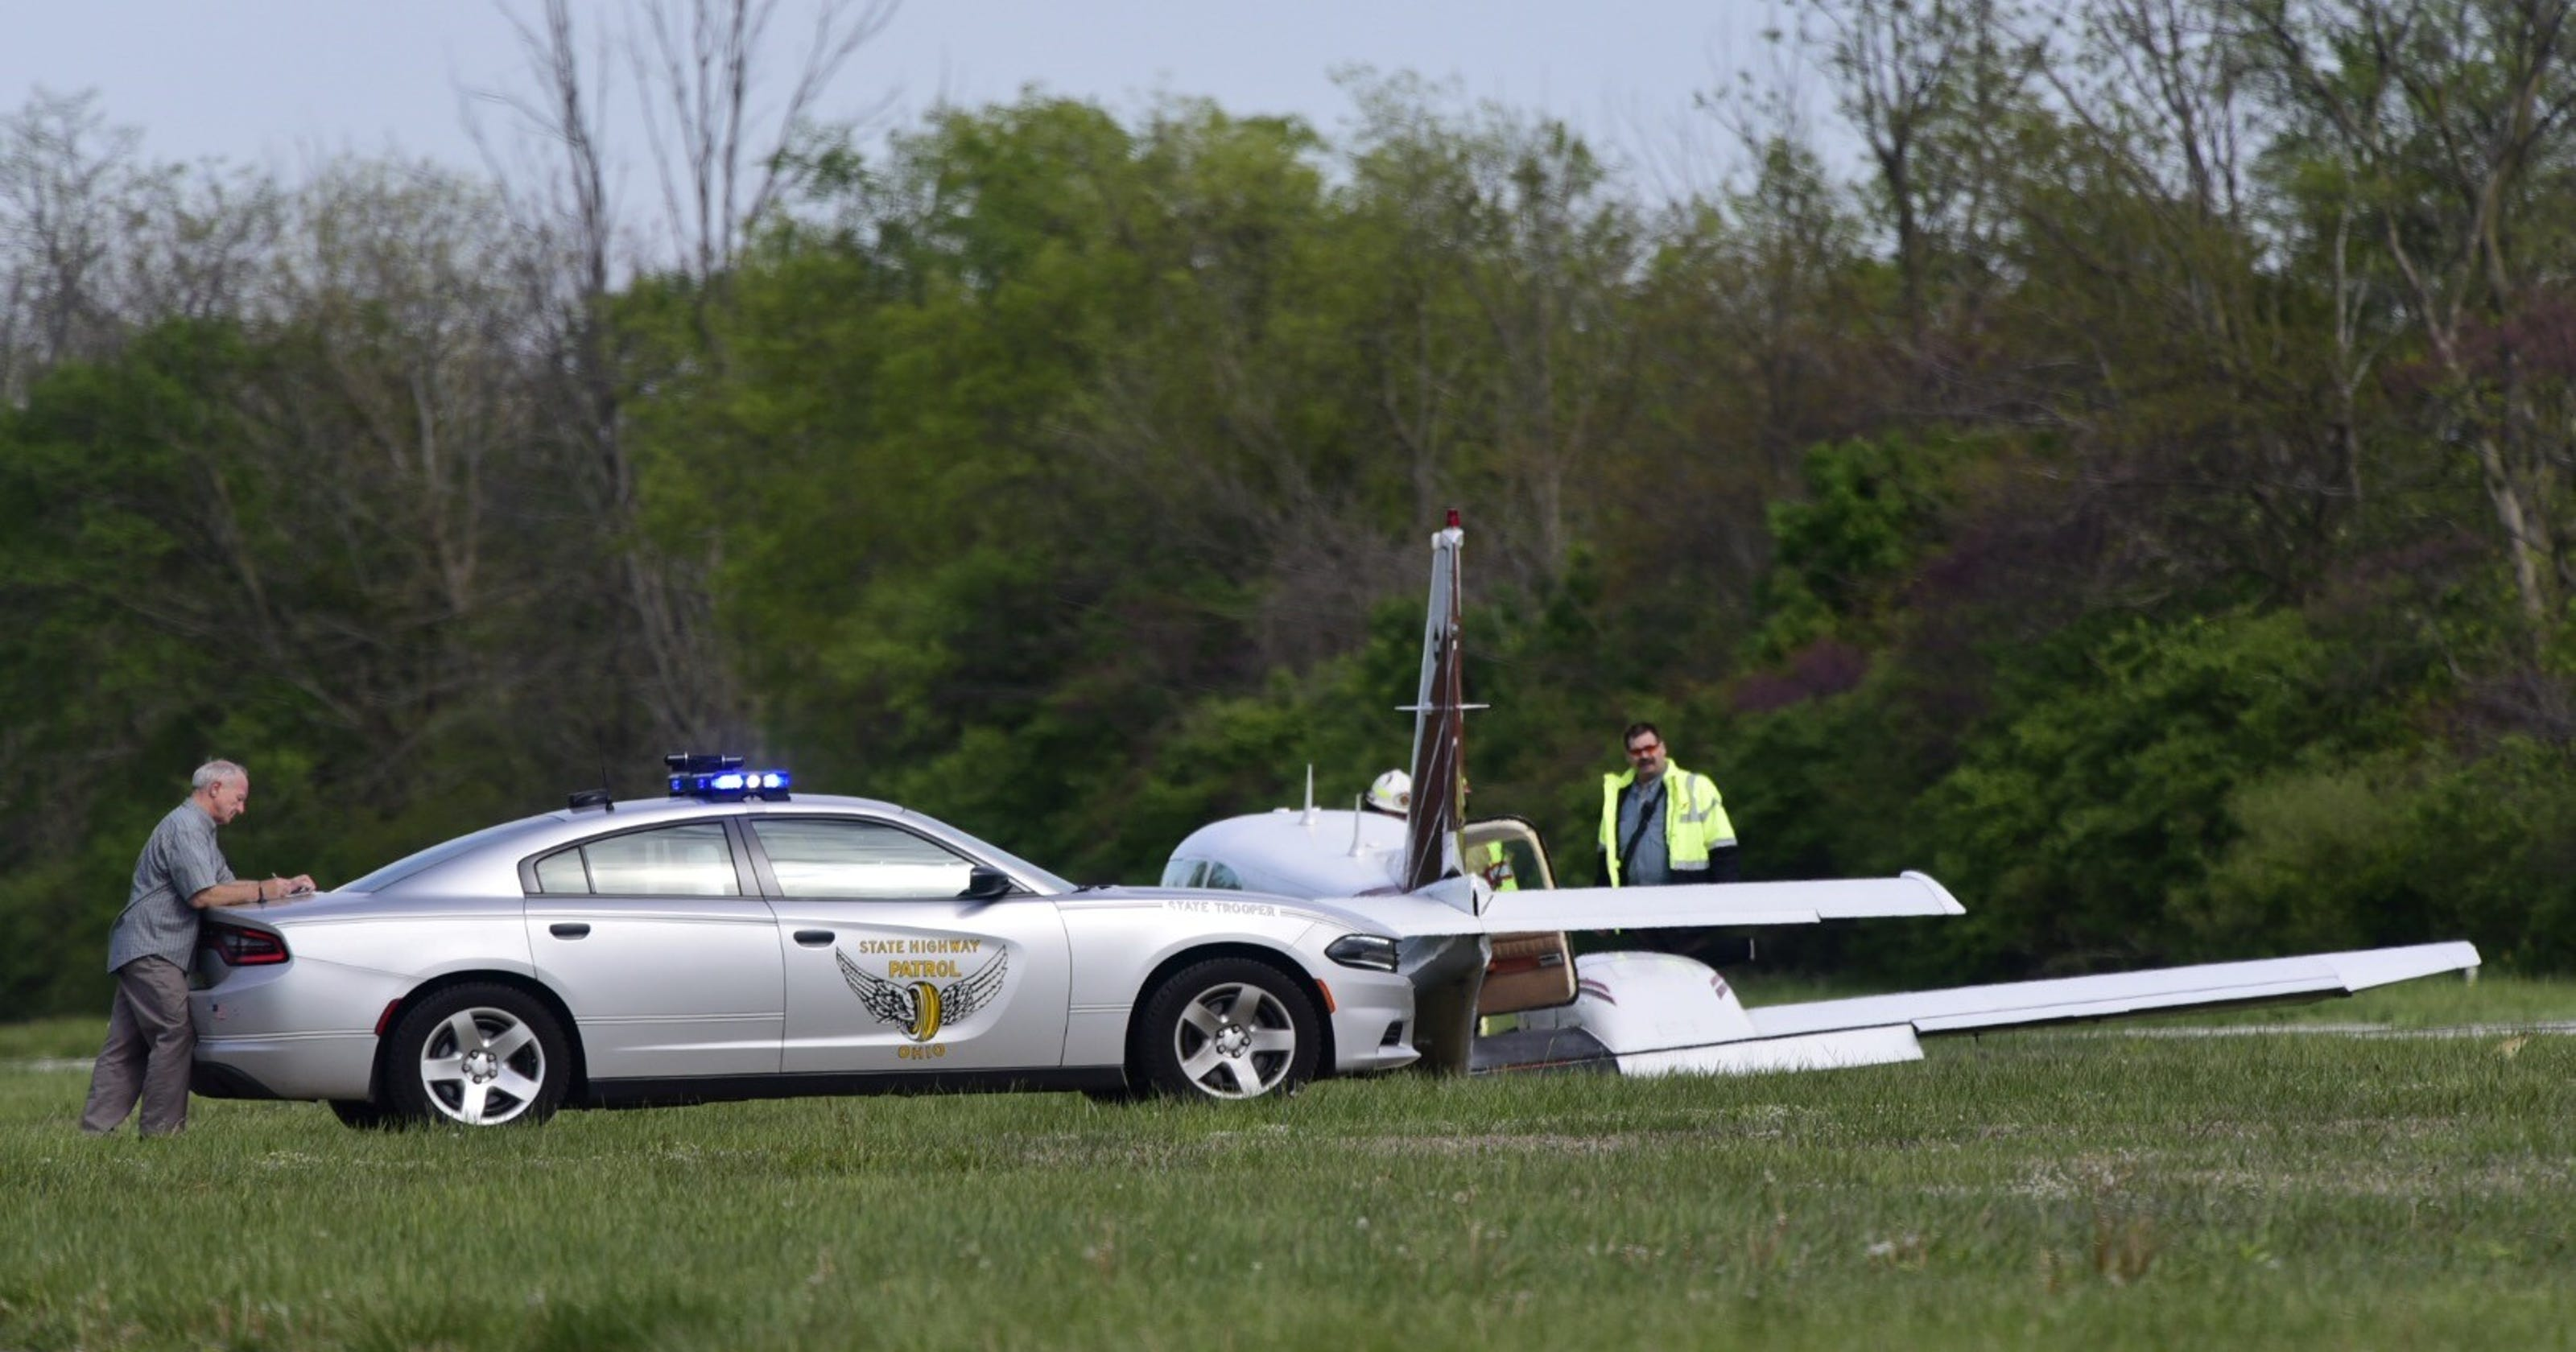 Plane Clips Truck Crashes At Airport No Injuries Reported